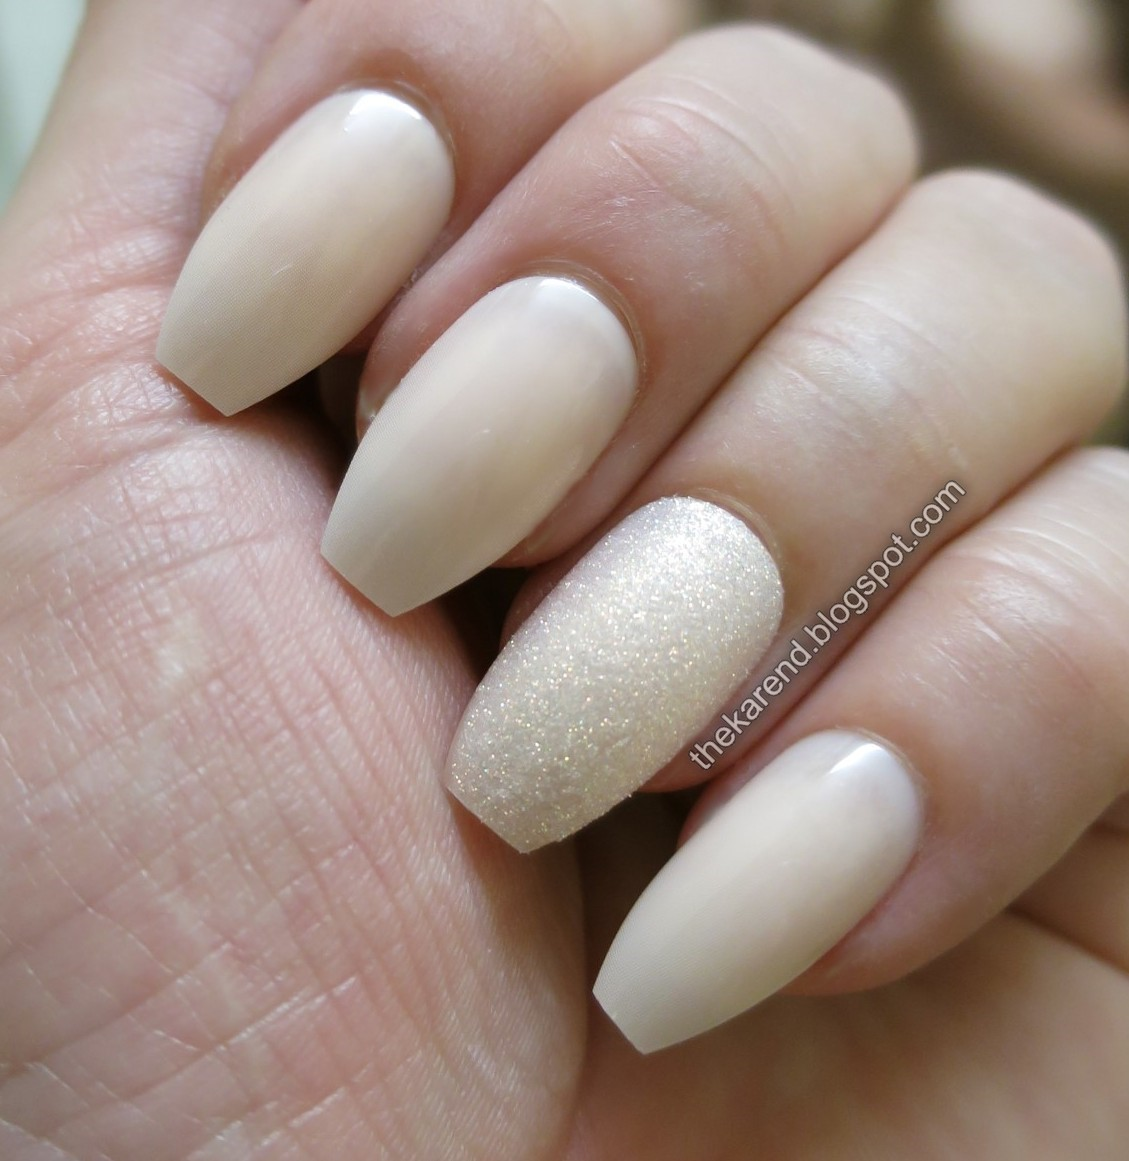 Frazzle and Aniploish: Protective Nails of the Day